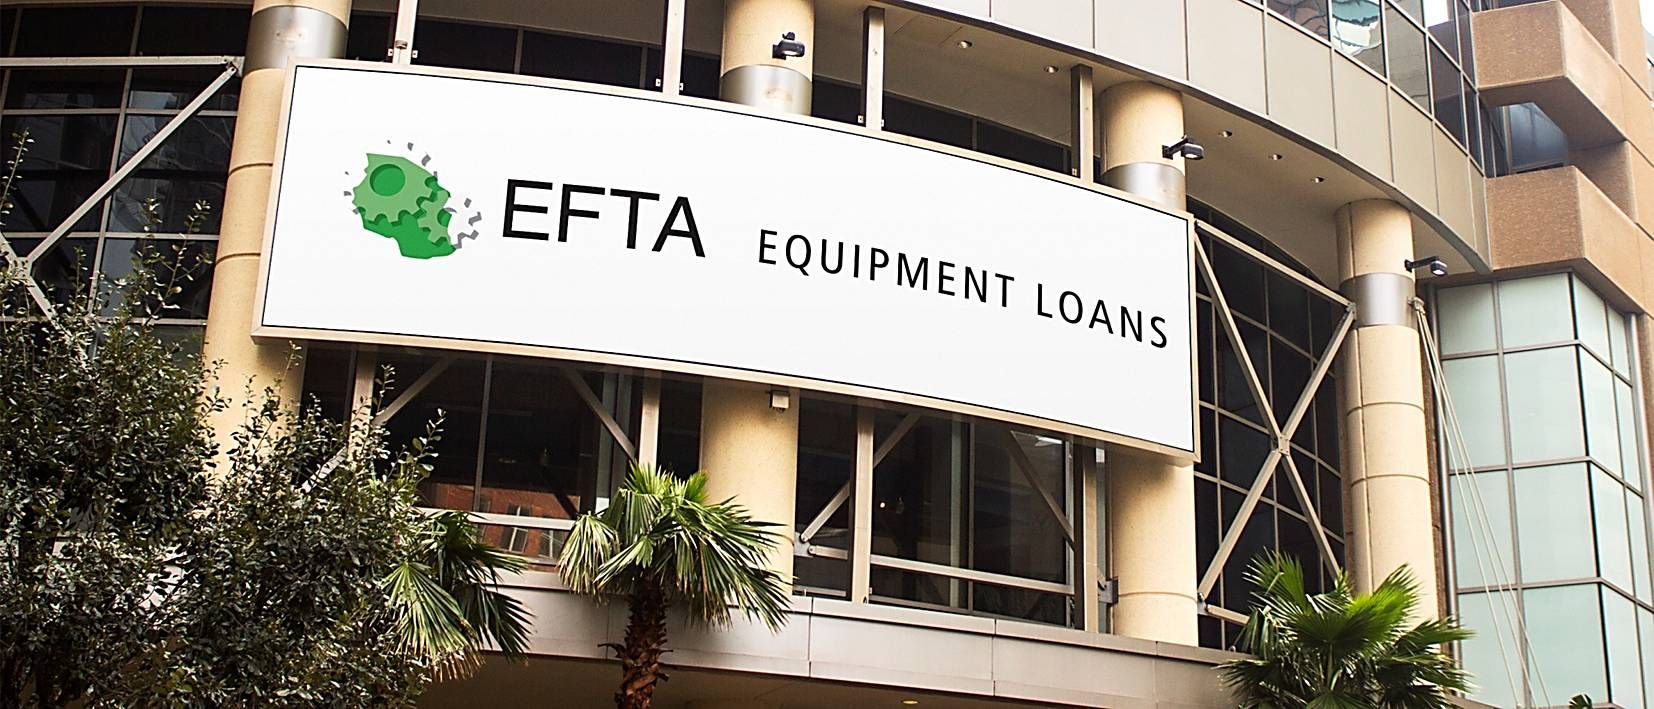 large efta sign on building with palm trees